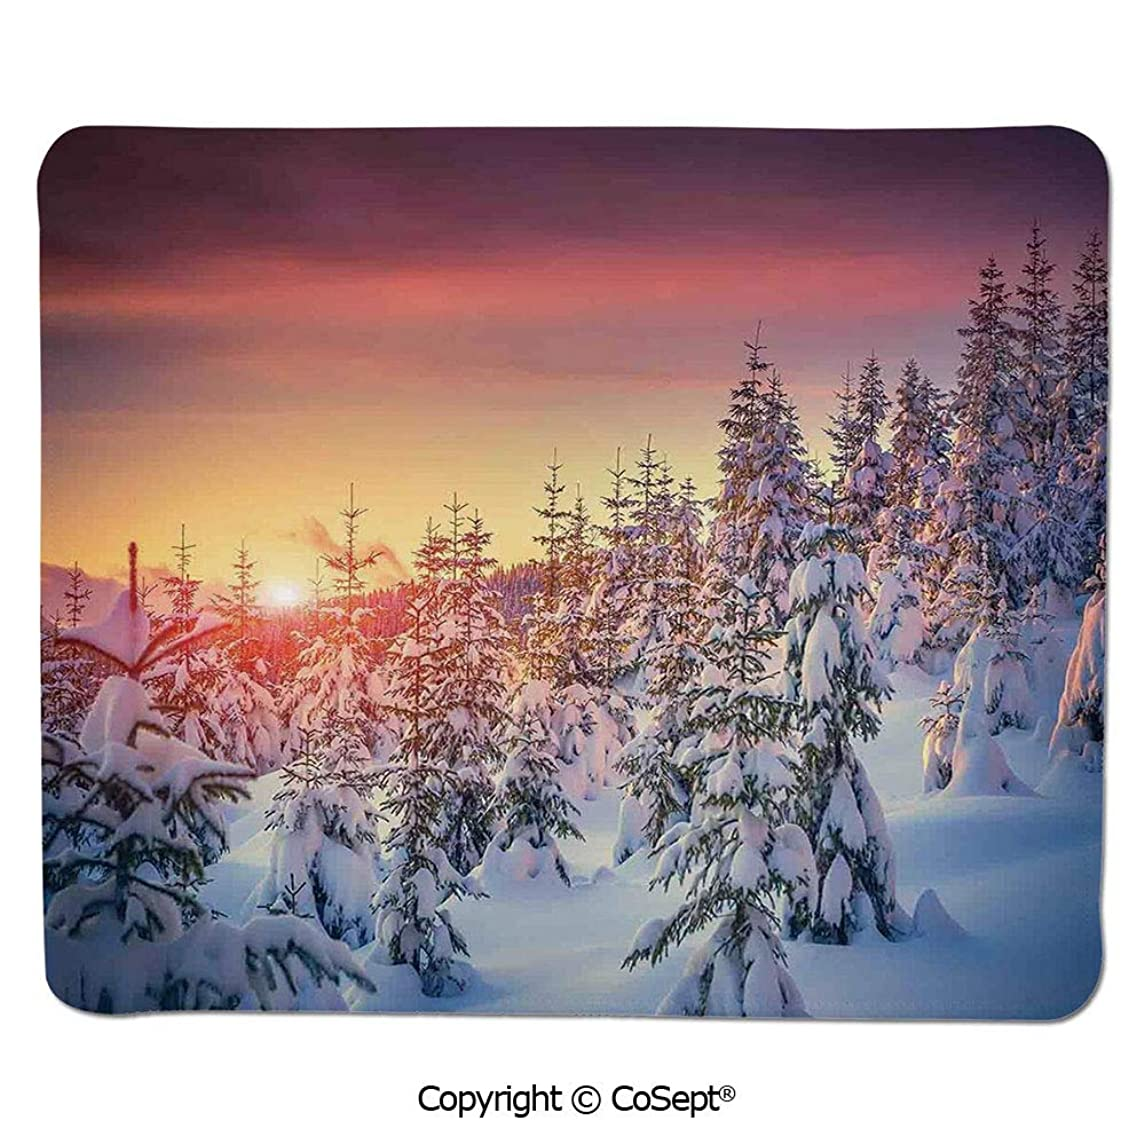 Non-Slip Rubber Base Mousepad,Snowy Landscape at Gloomy Sunrise Light in Mountain Forest Serene Photo,Water-Resistant,Non-Slip Base,Ideal for Gaming (11.81